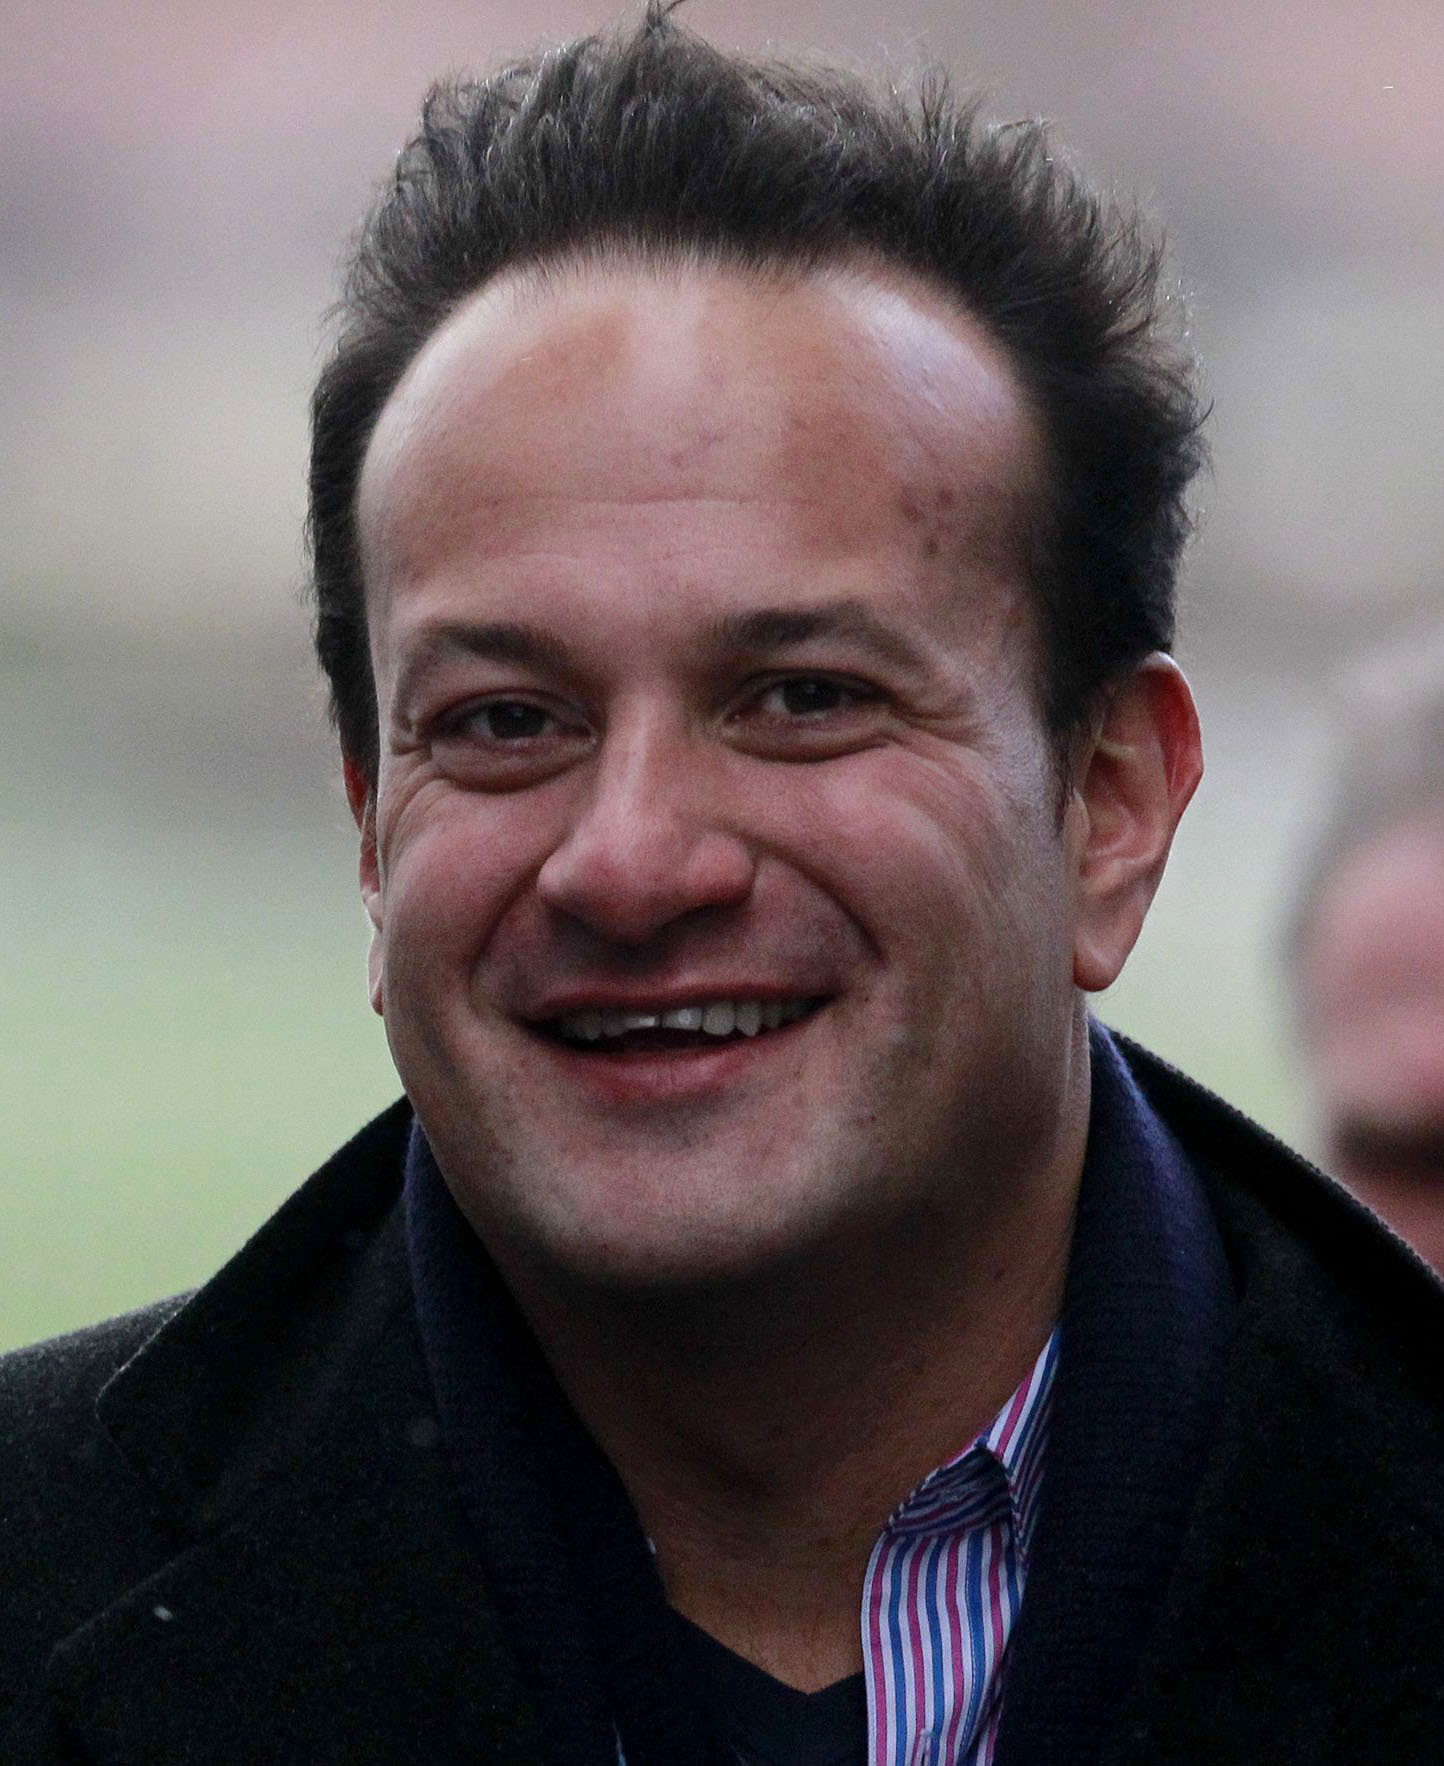 Irish Health minister Leo Varadkar, 36, who has publicly come out as gay, pictured here on Dec. 27, 2013.